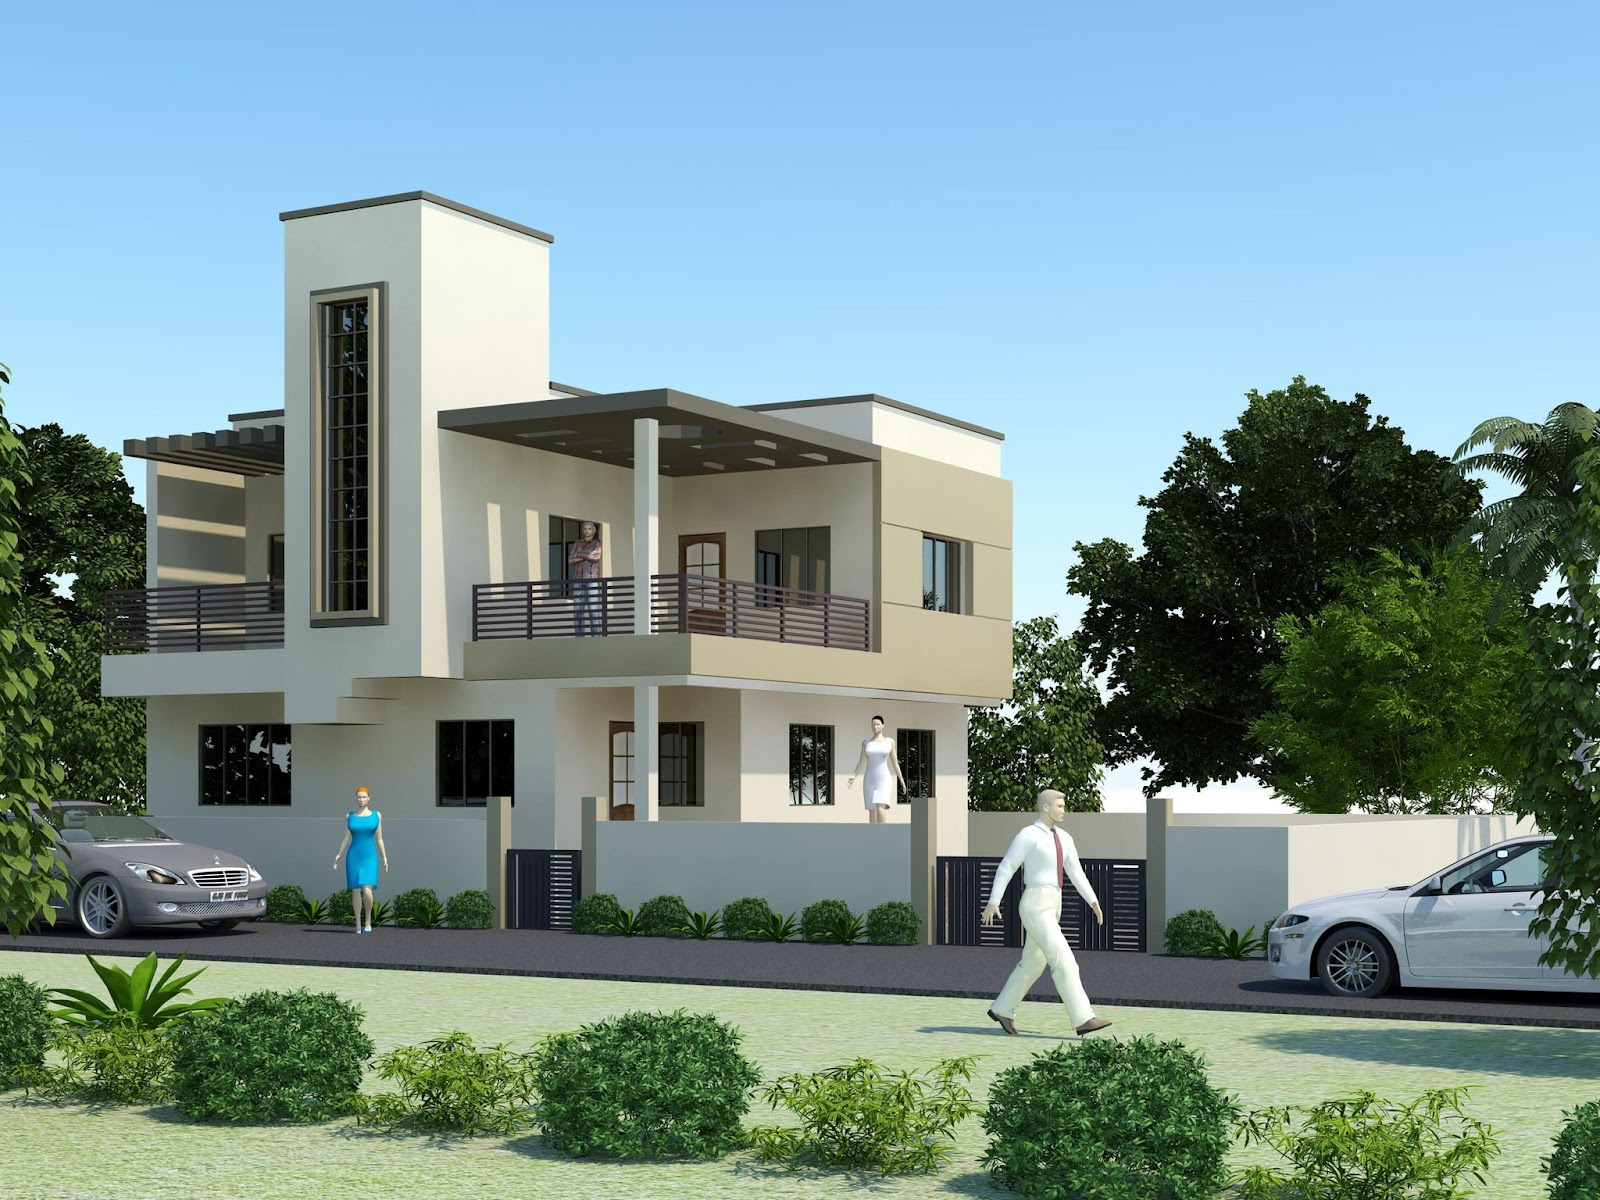 new home designs latest modern homes exterior designs On house front design photo